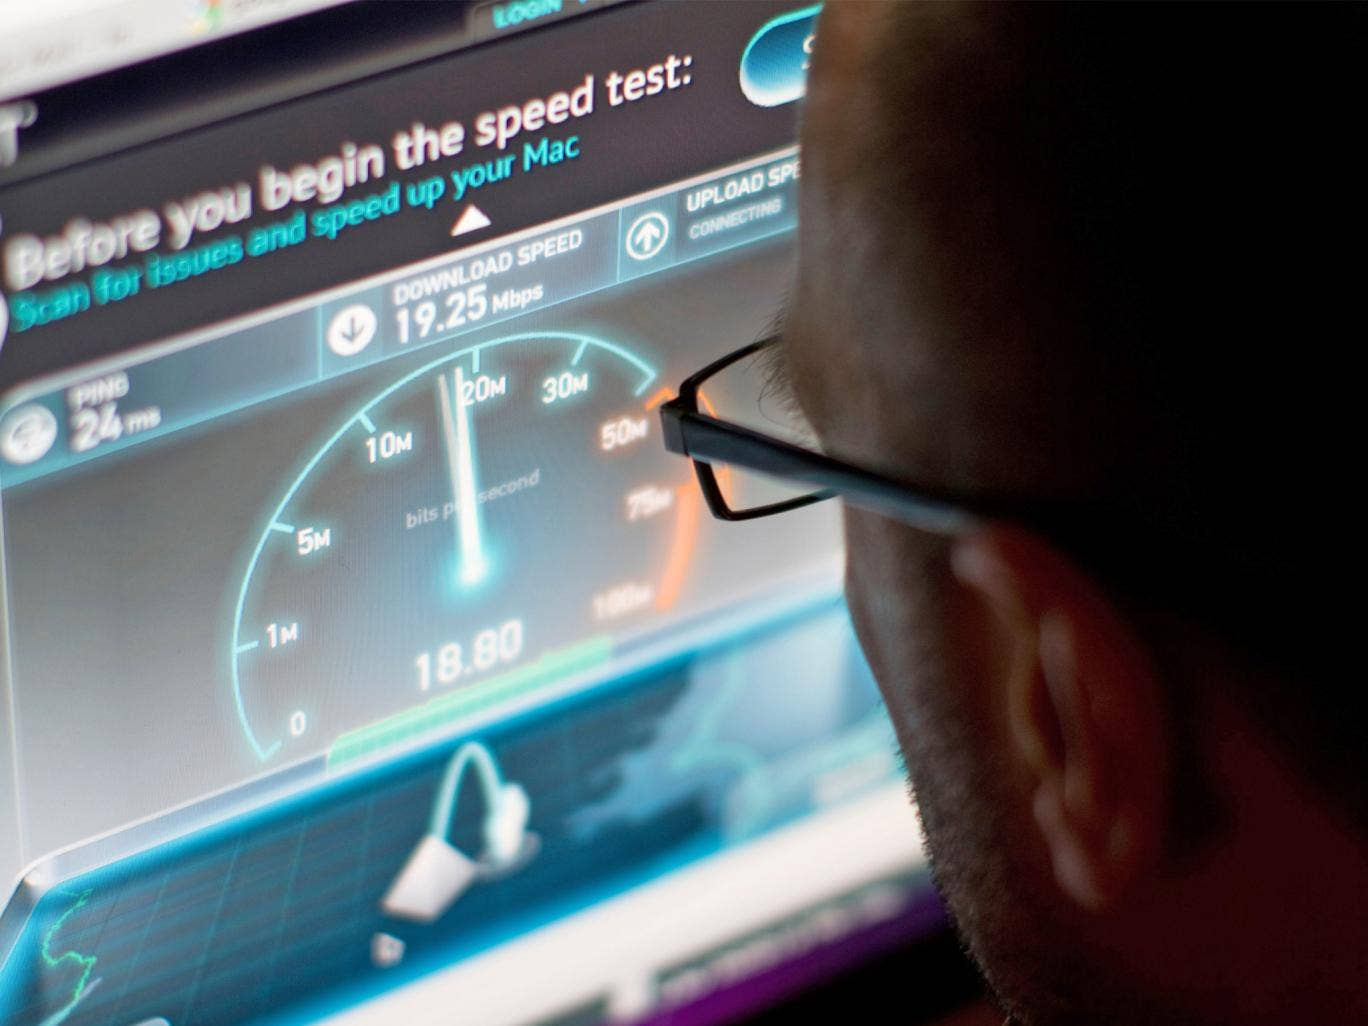 We are rarely satisfied with the speed at which we access the internet at home